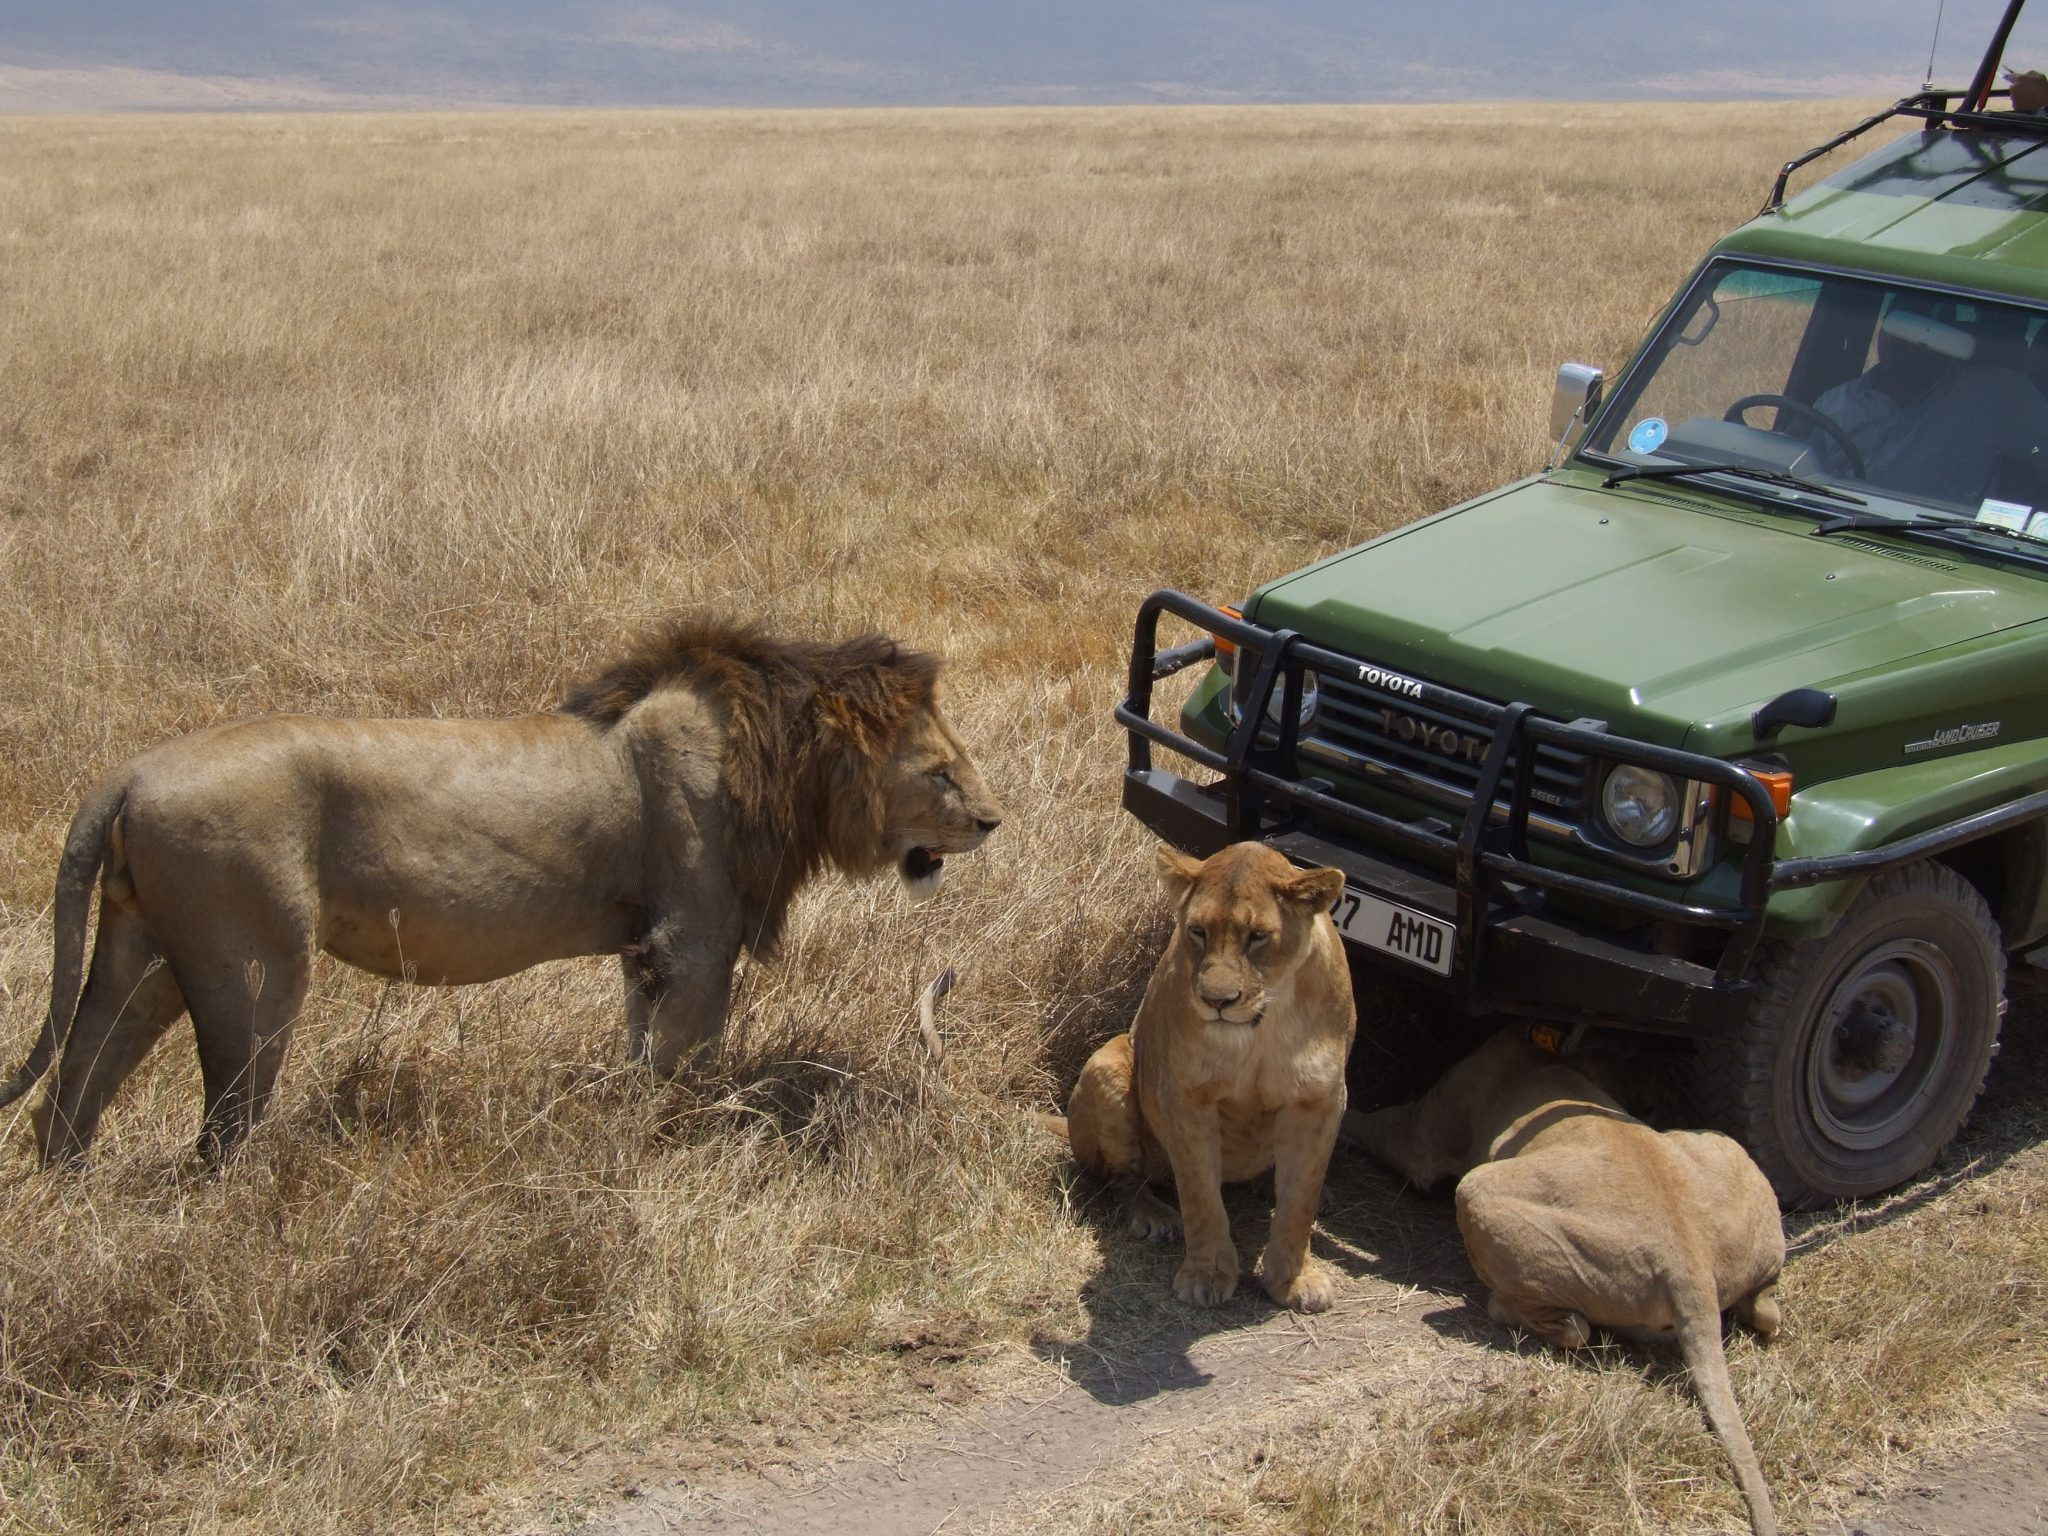 3 lions rest in front of a green jeep on a field of grass